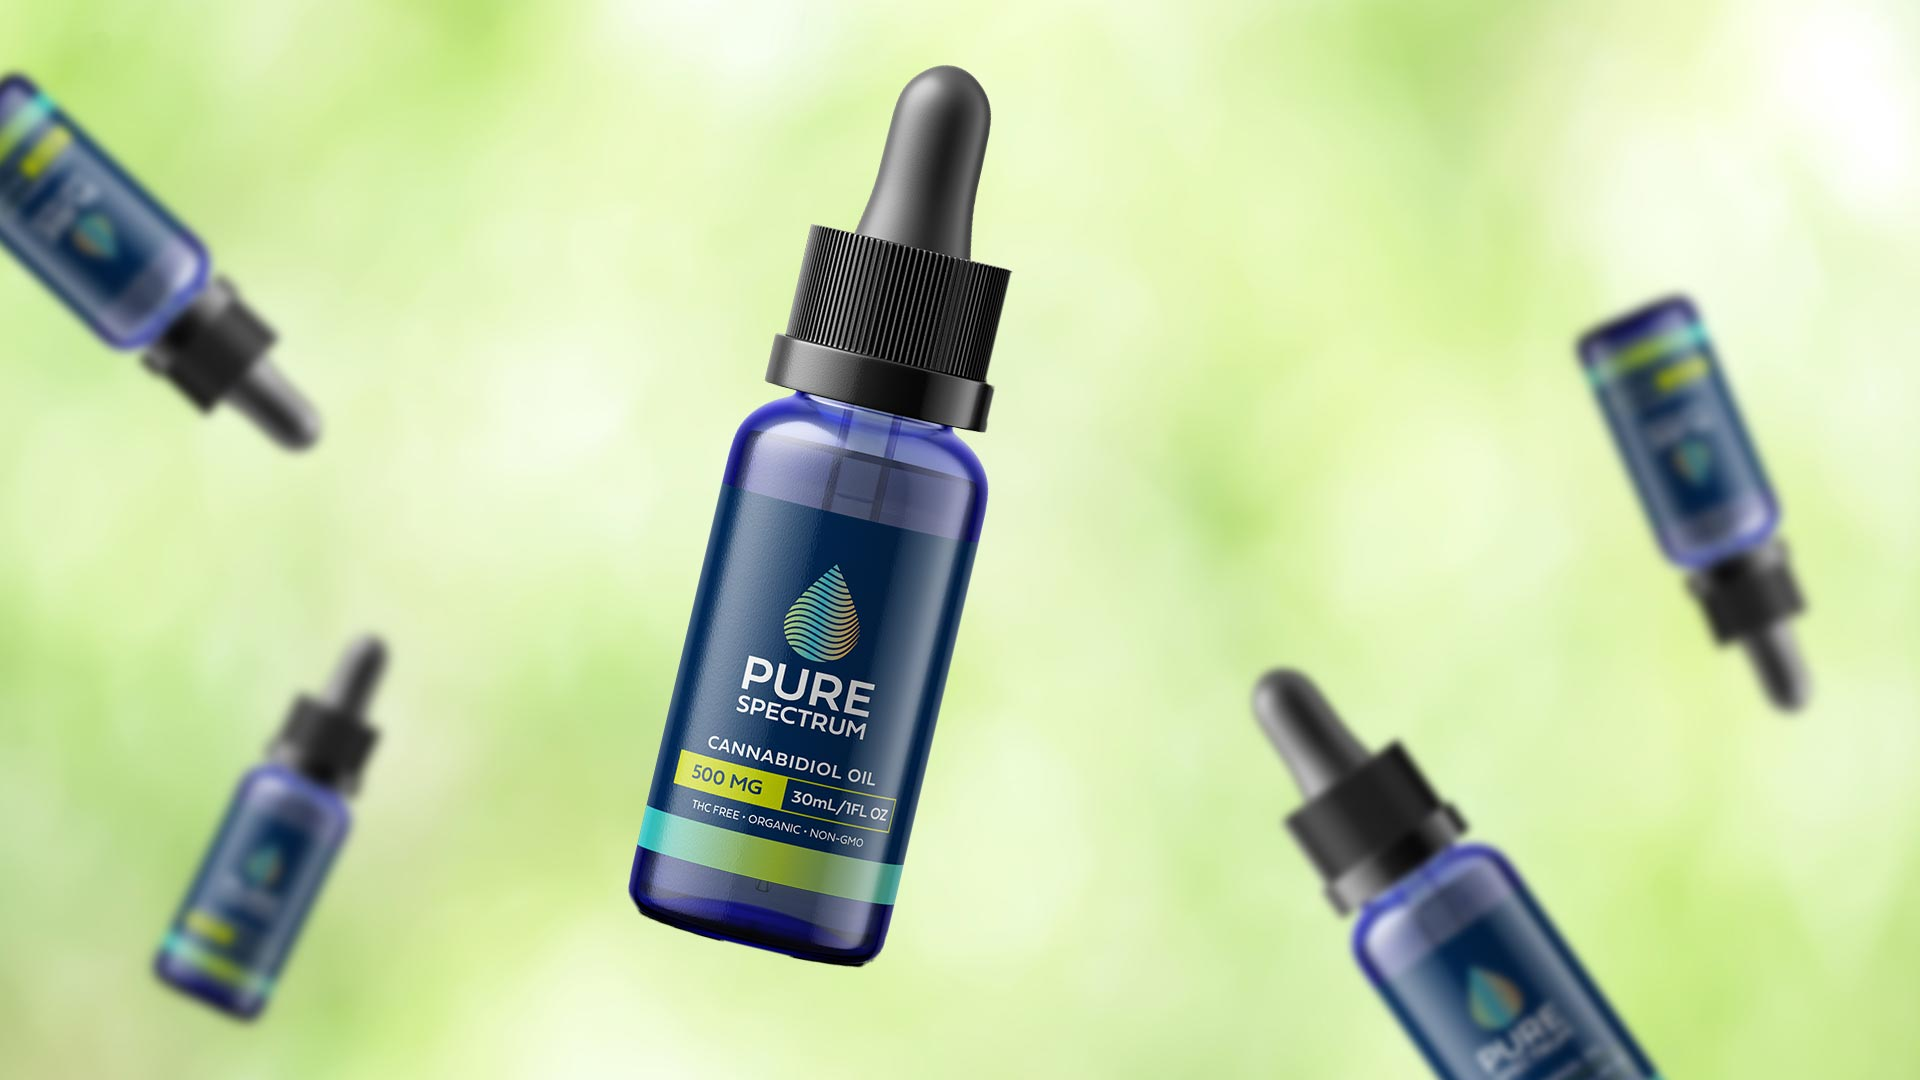 Pure Spectrum 500mg CBD Oil Hemp Tincture